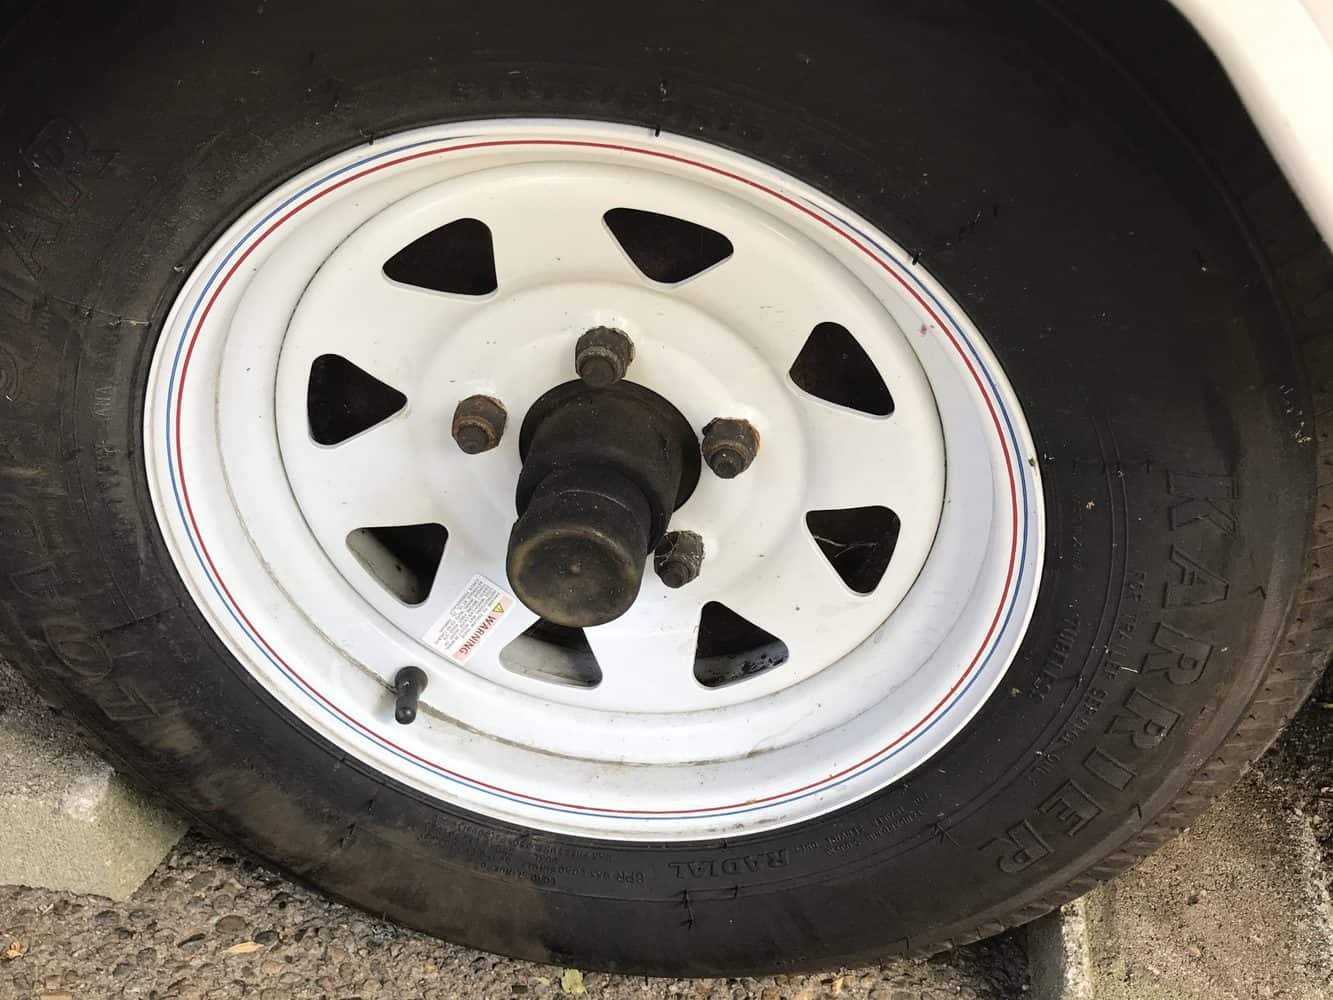 How to travel trailer brakes work